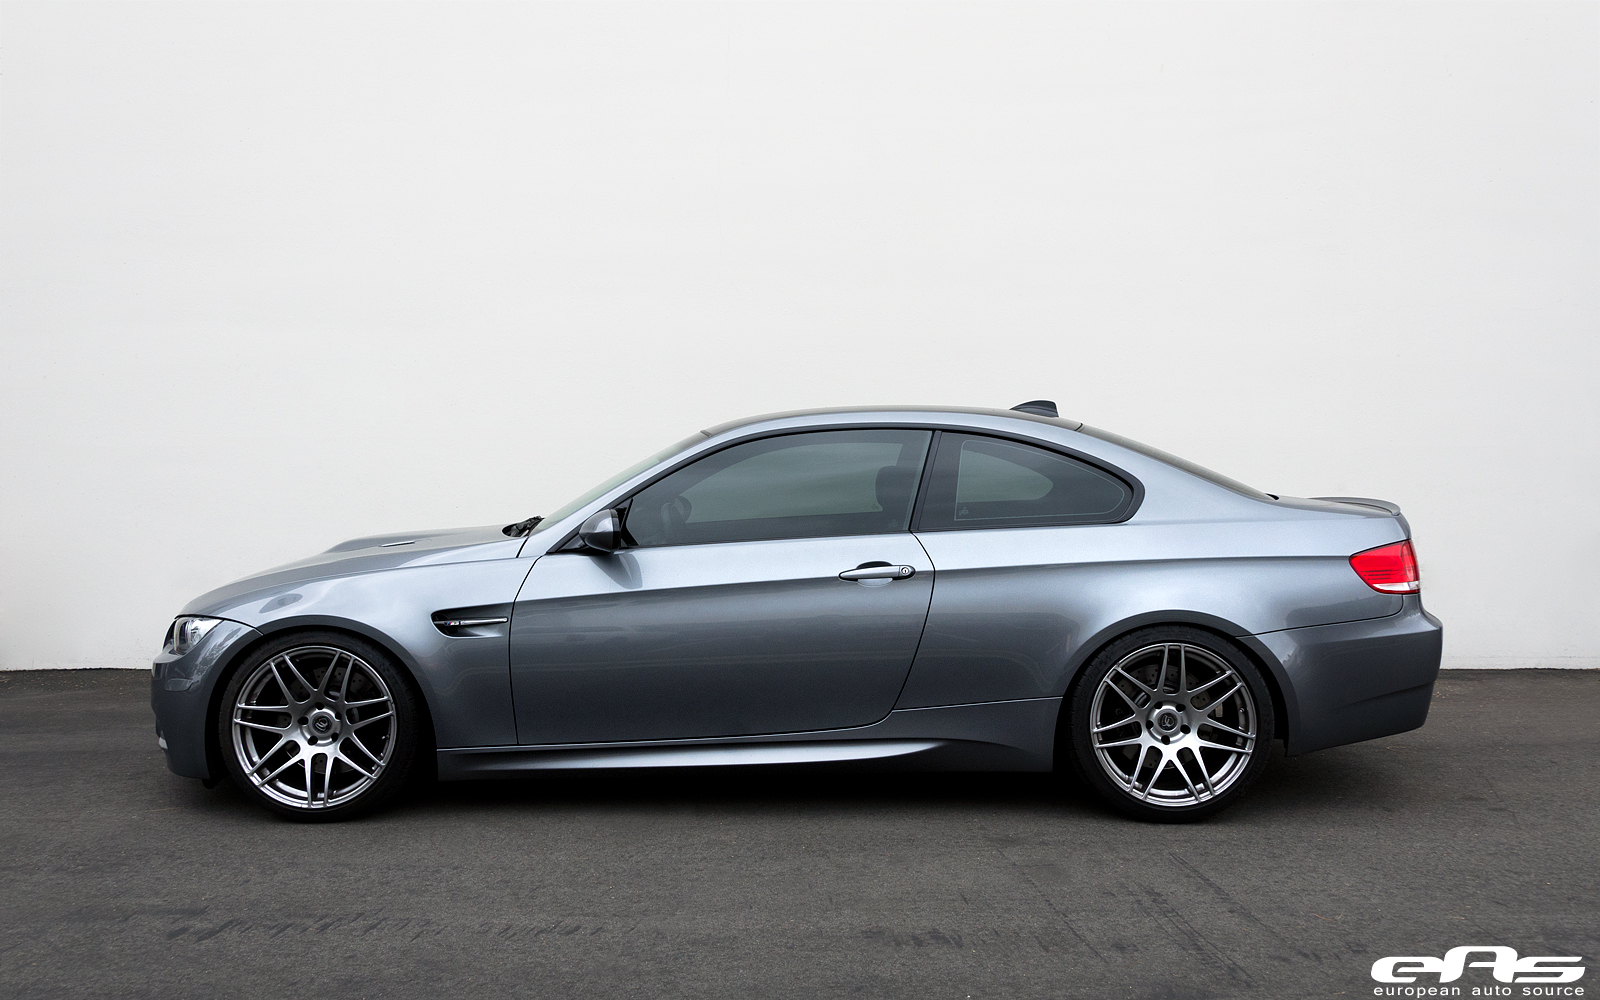 Wallpaper Amazing Convertible Cars Space Grey Bmw E92 M3 Climbs On Kw Suspension At Eas